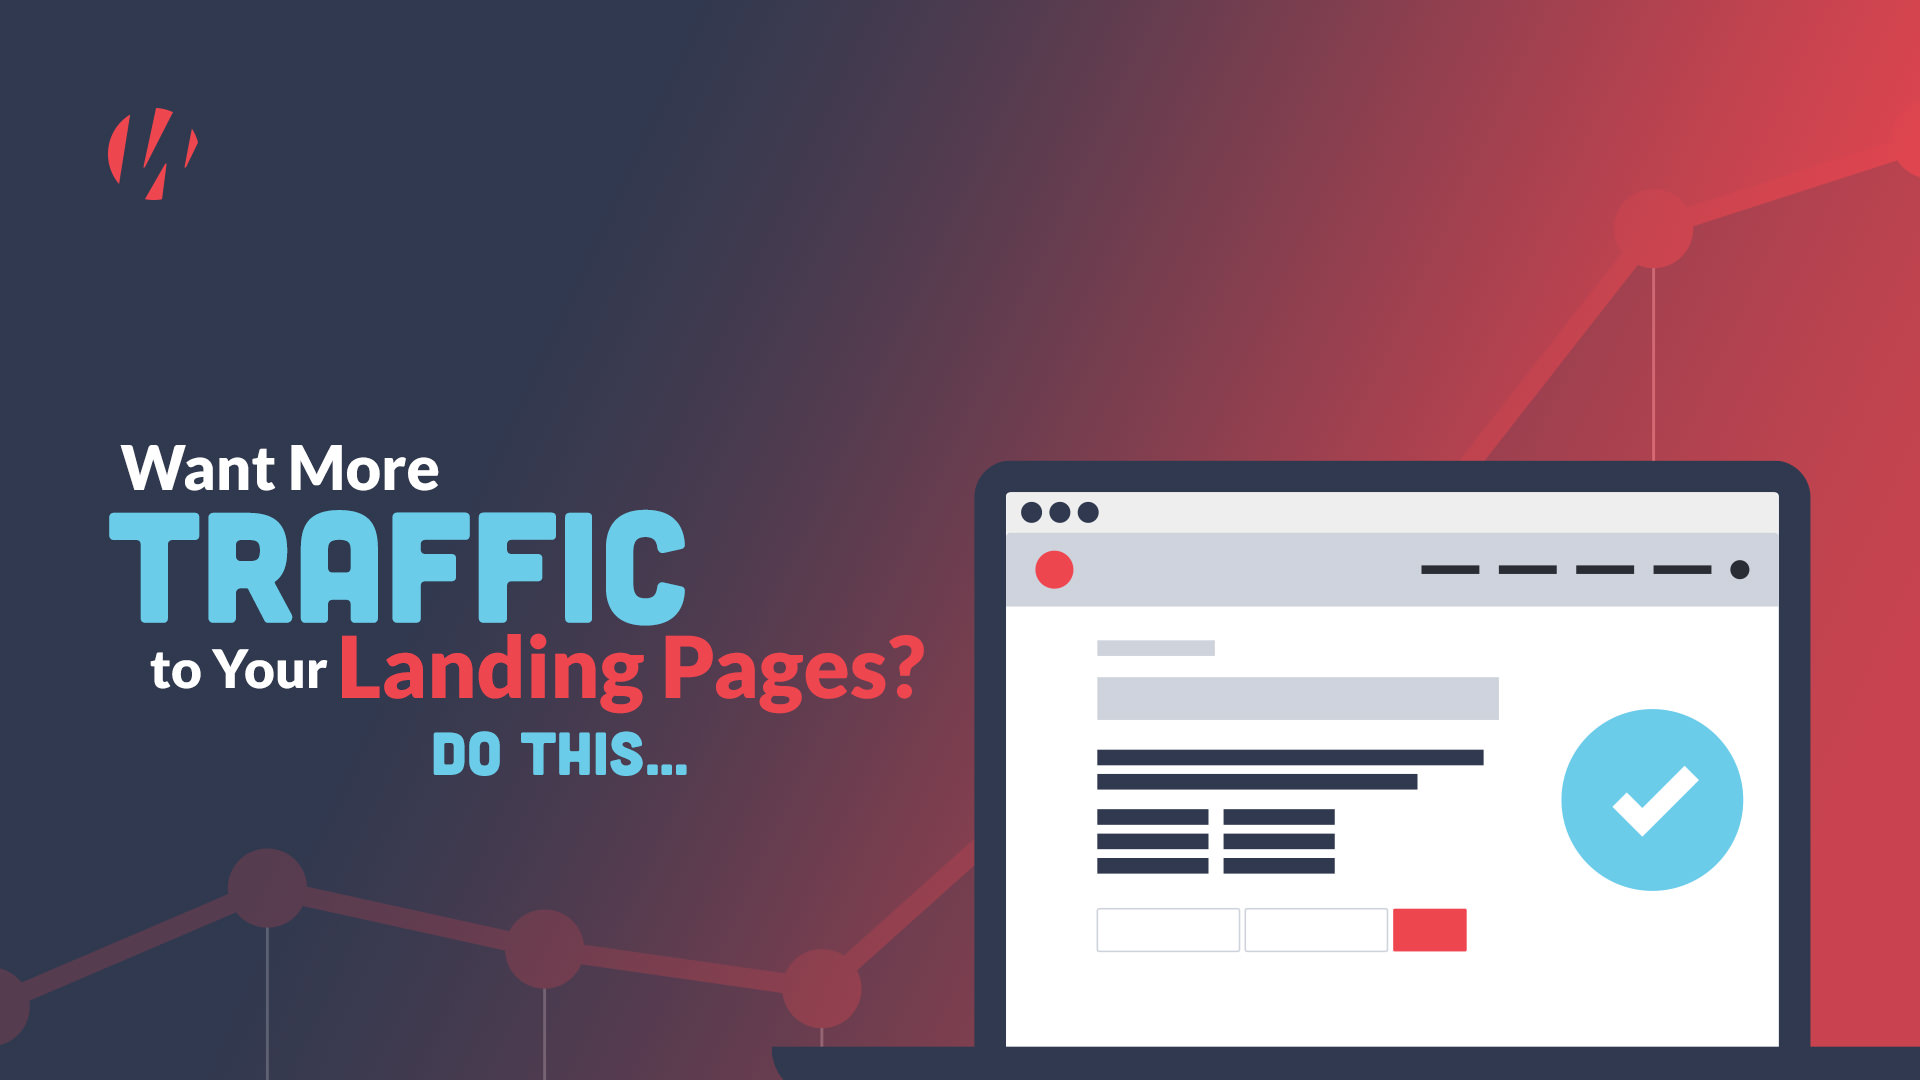 Want More Traffic to Your Landing Pages? Do This!